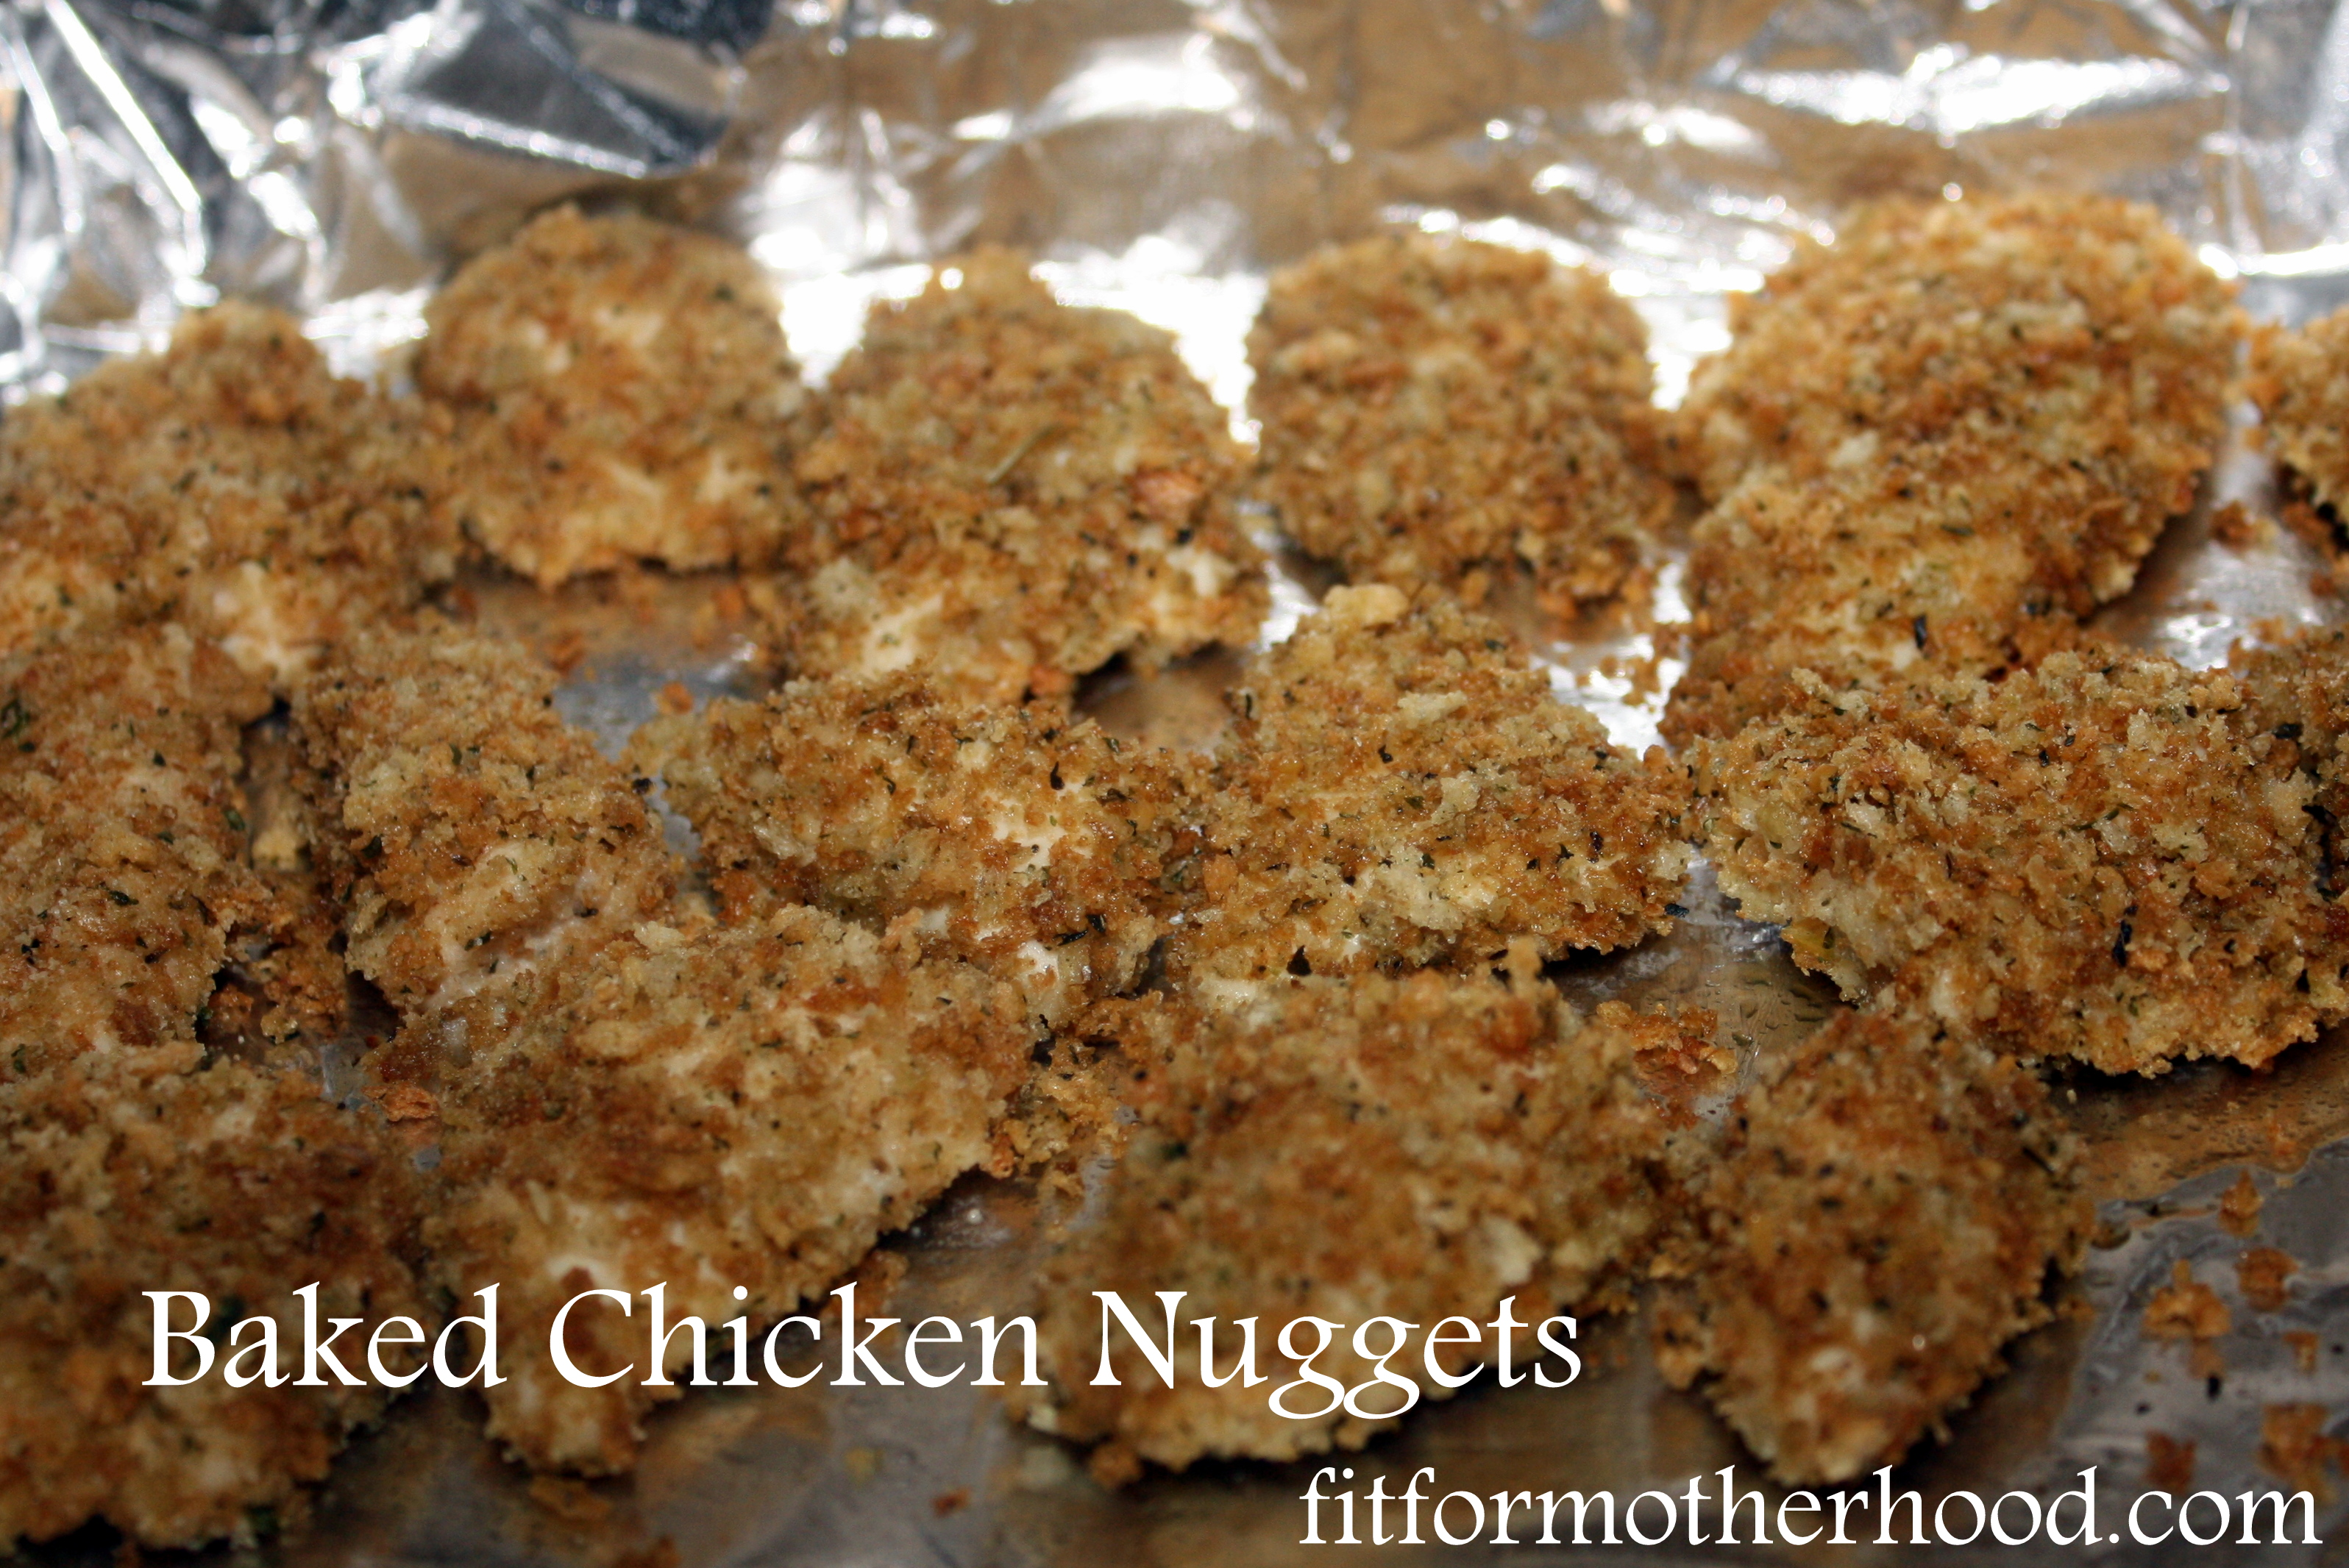 Easy and Healthy Baked Chicken Nuggets